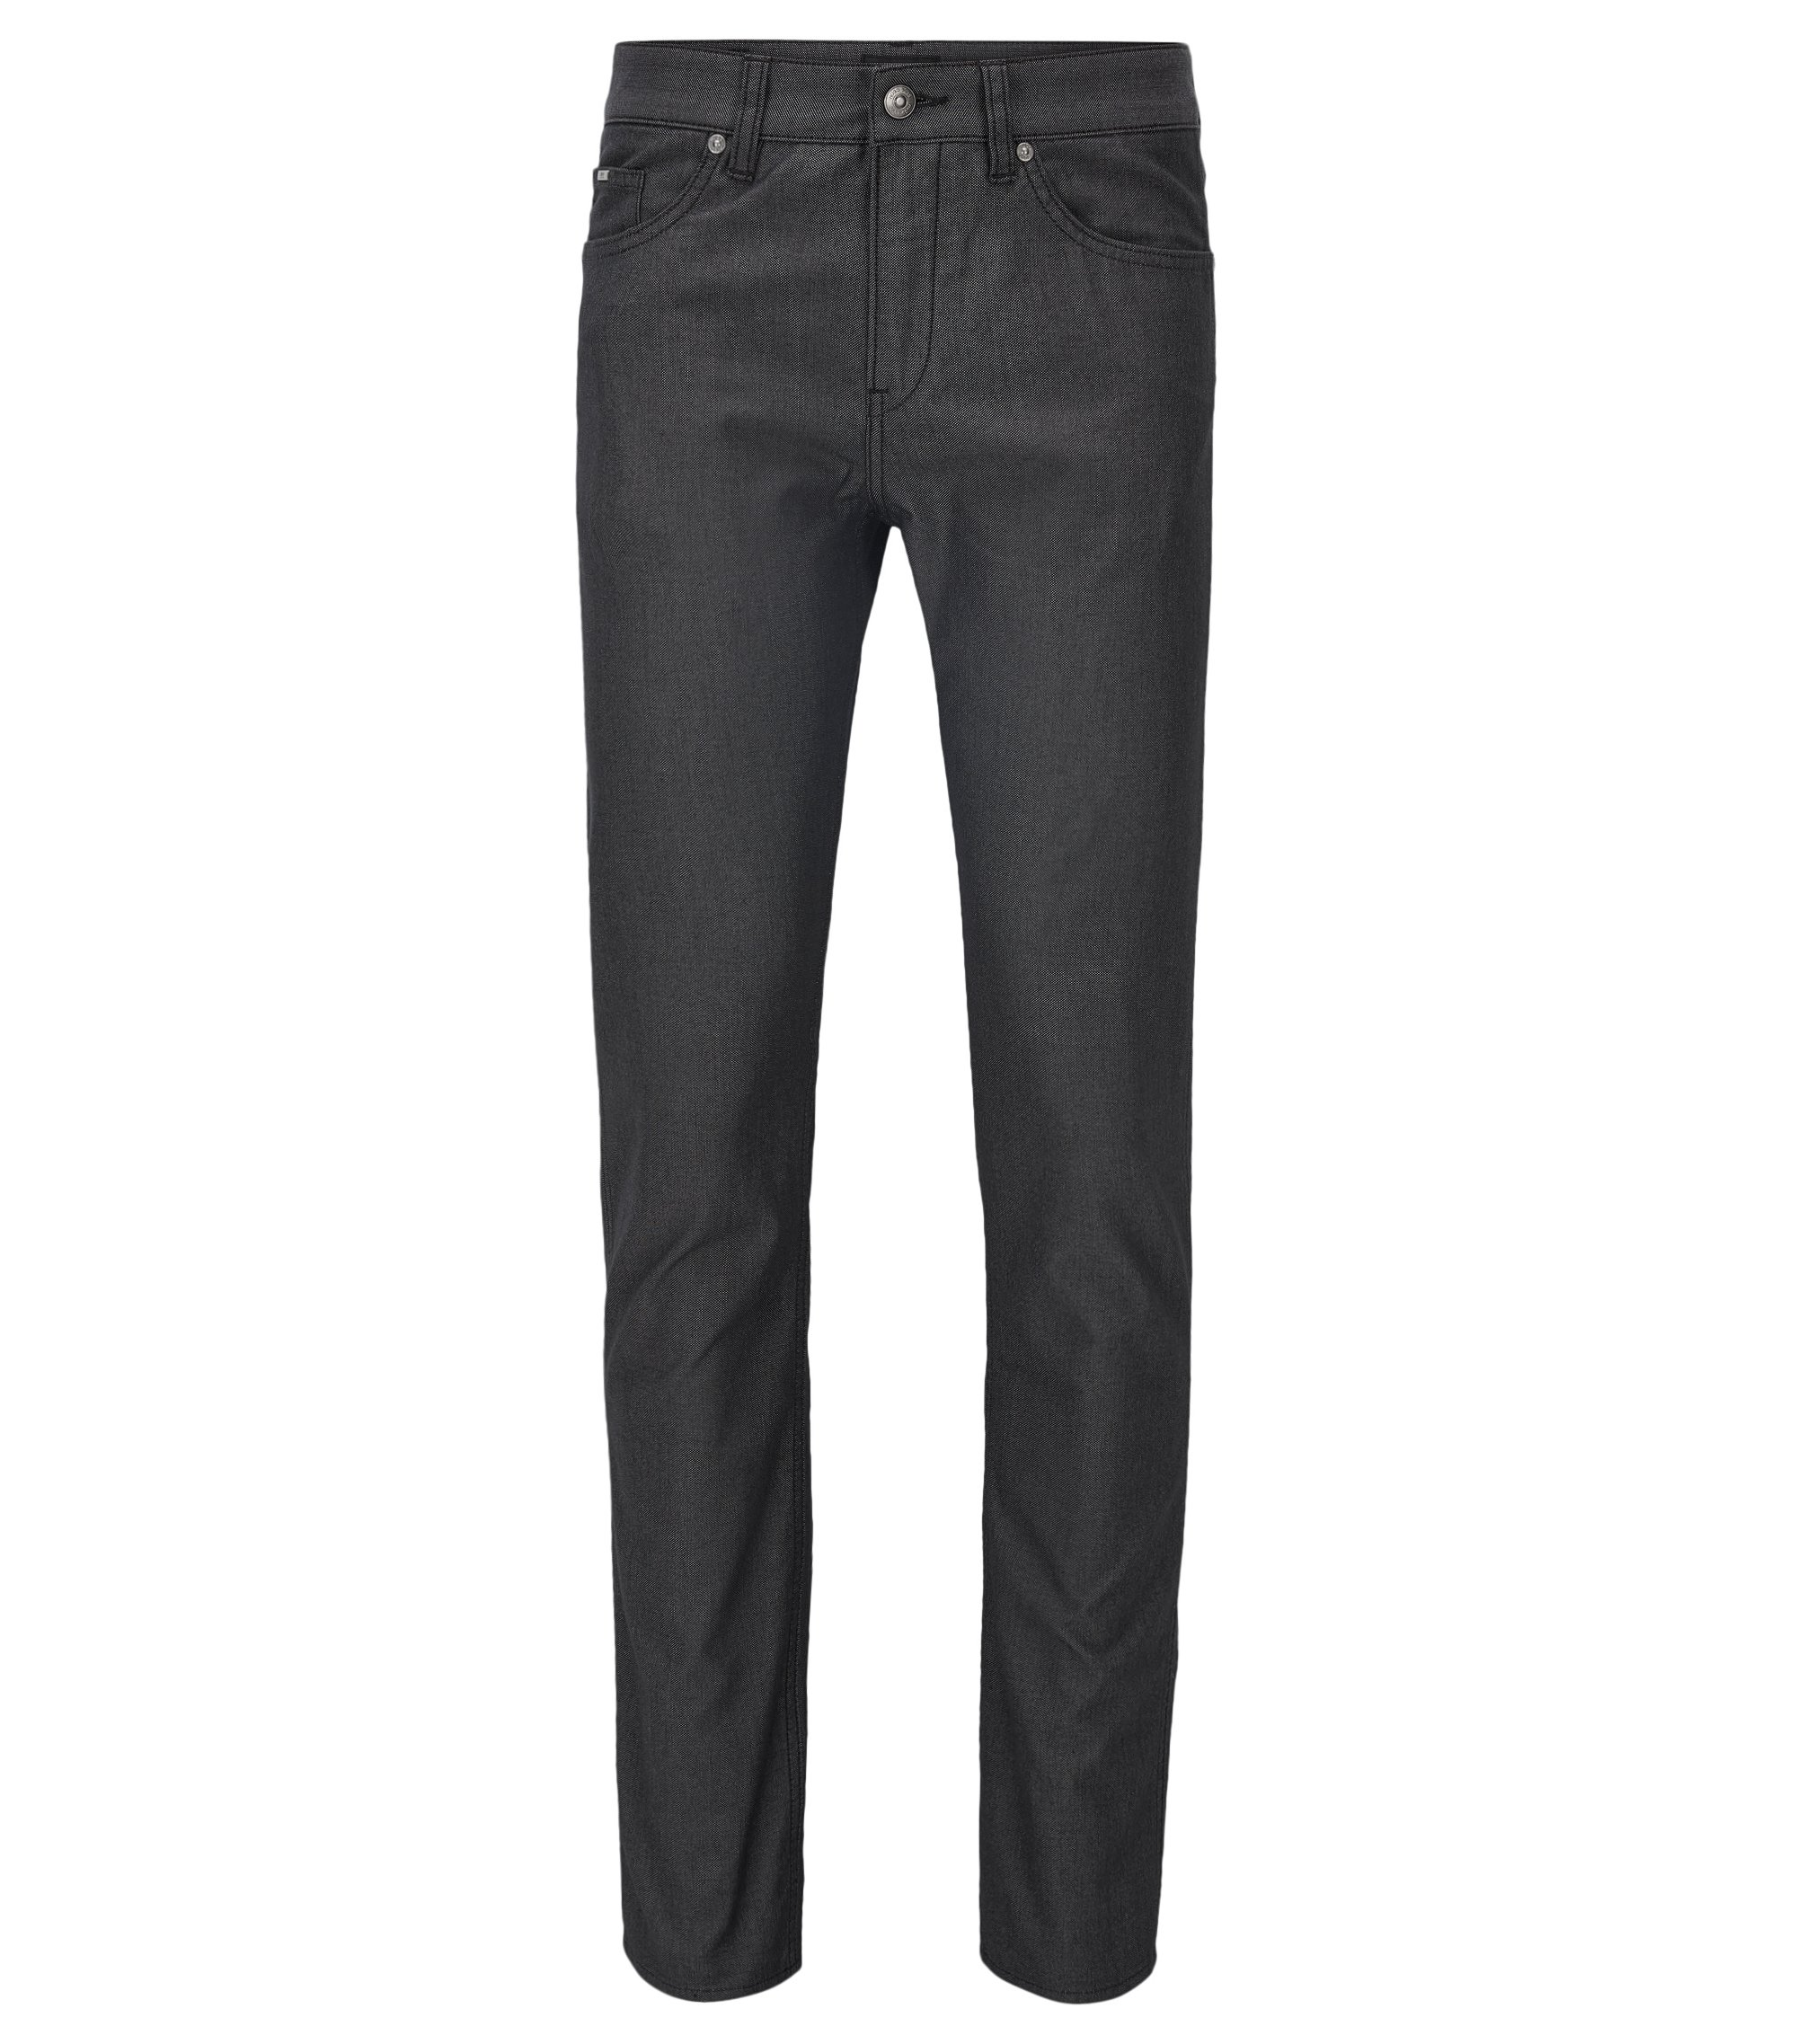 Vaqueros slim fit en denim elástico para mayor confort, Negro